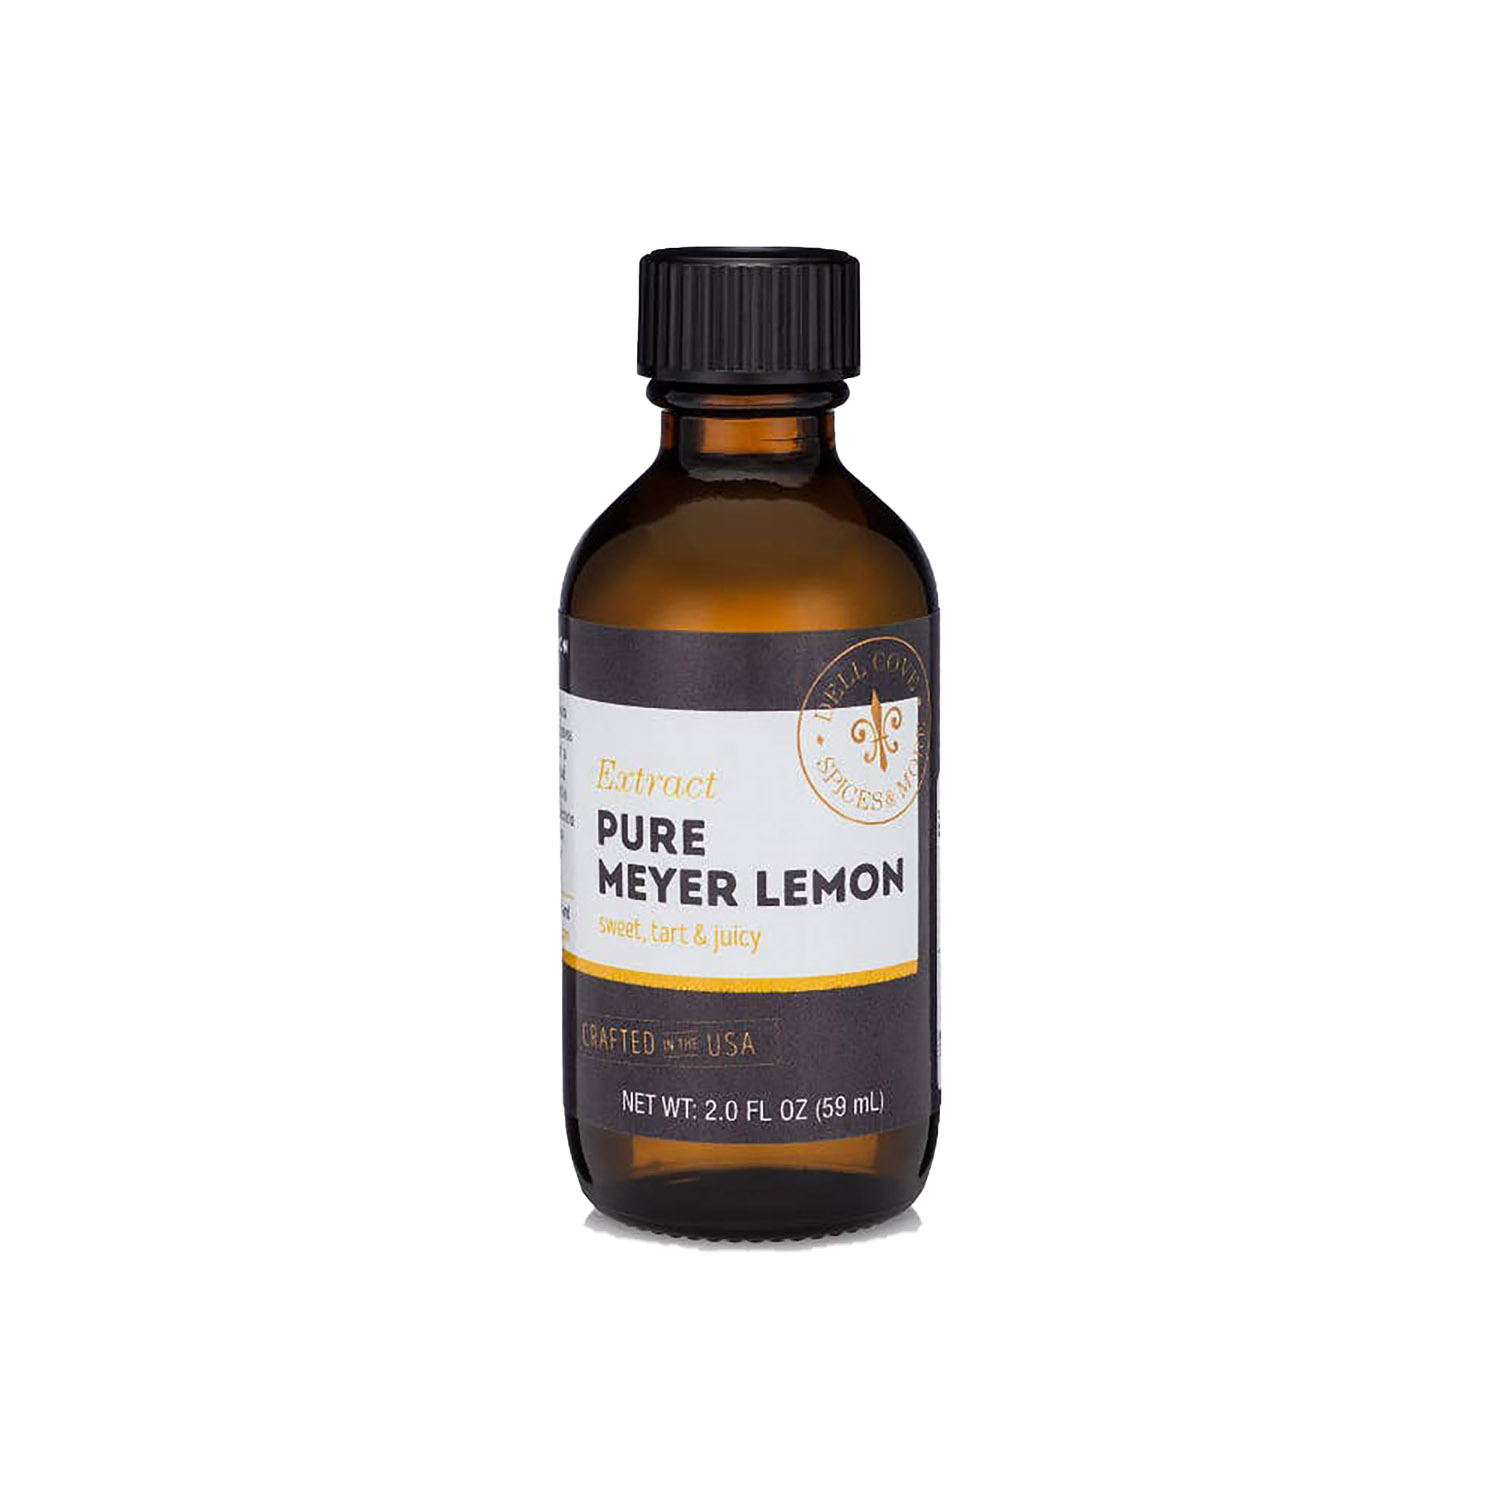 Pure Meyer Lemon Extract